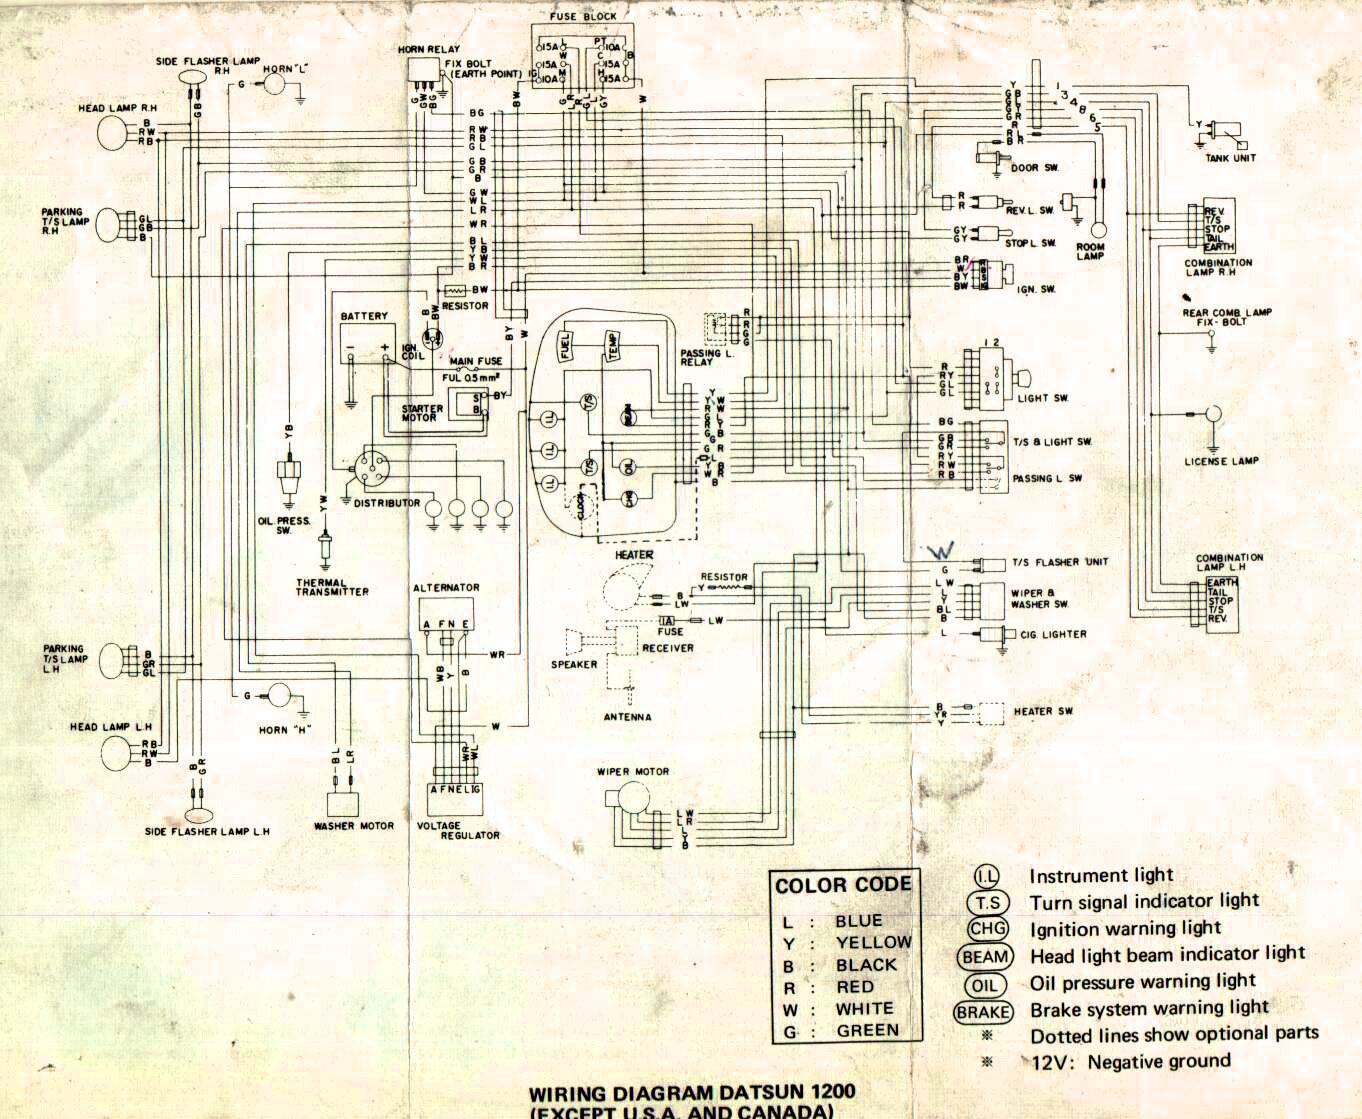 Nissan Wiring Diagrams Schematics Datsun 1200 Diagram Library Dat110 2